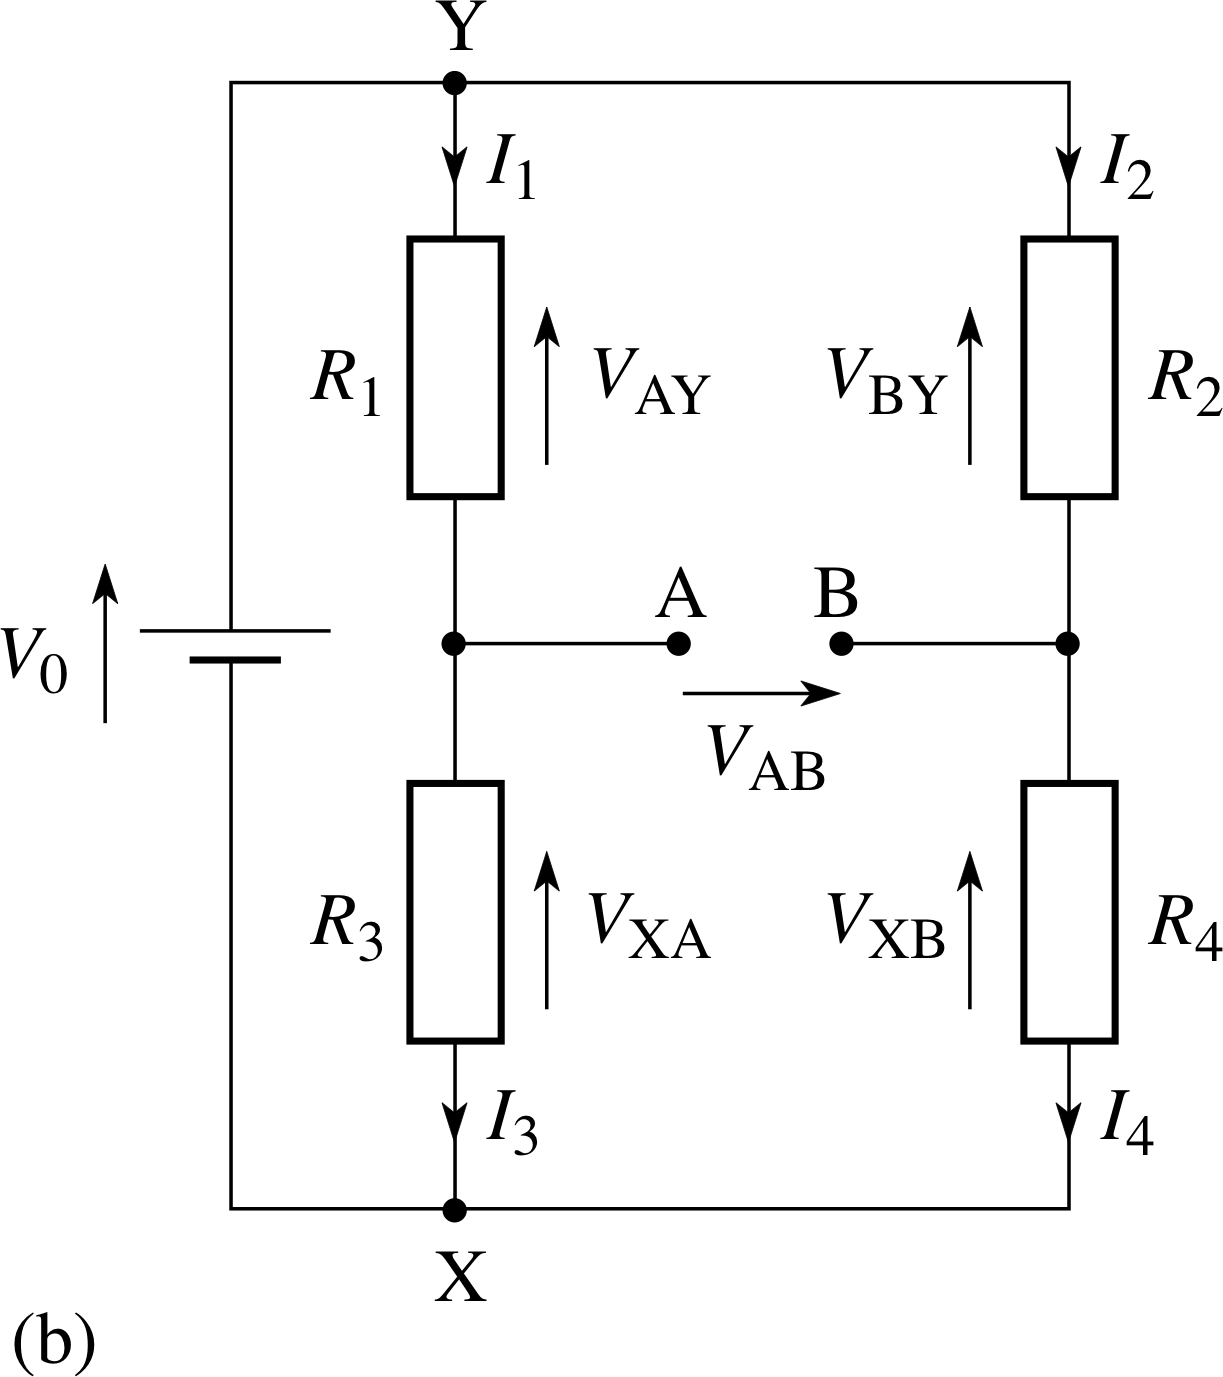 Pplato Flap Phys 41 Dc Circuits And Currents Im Solving The Circuit With Nodal Analysis Following Steps Of Figure 14b Wheatstone Bridge